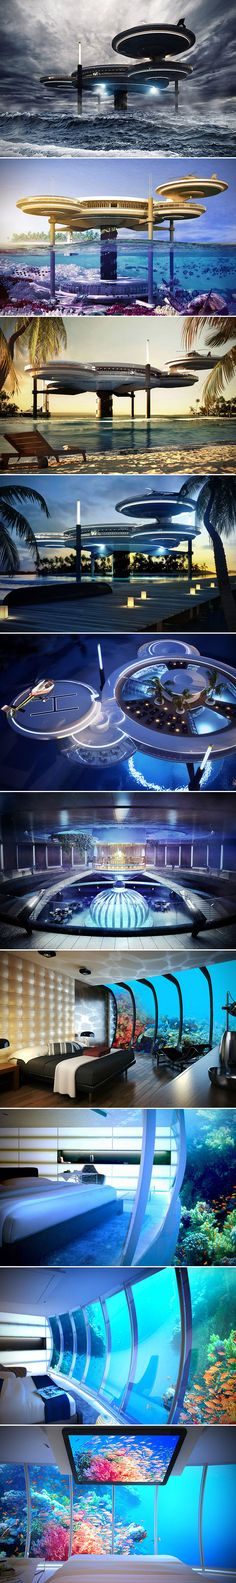 Dubai continues to be a leader when it comes to innovative, luxury resorts, and if their Water Discus Underwater Hotel is any indication, Dubai shows no signs of slowing down.  The hotel gains its name from the building construction, which sees one disc above water, and one below. The top structure is connected to the bottom half with five solid legs, and includes a vertical shaft that has been outfitted with a lift and stairways for guests to explore the underwater portion of the hotel.